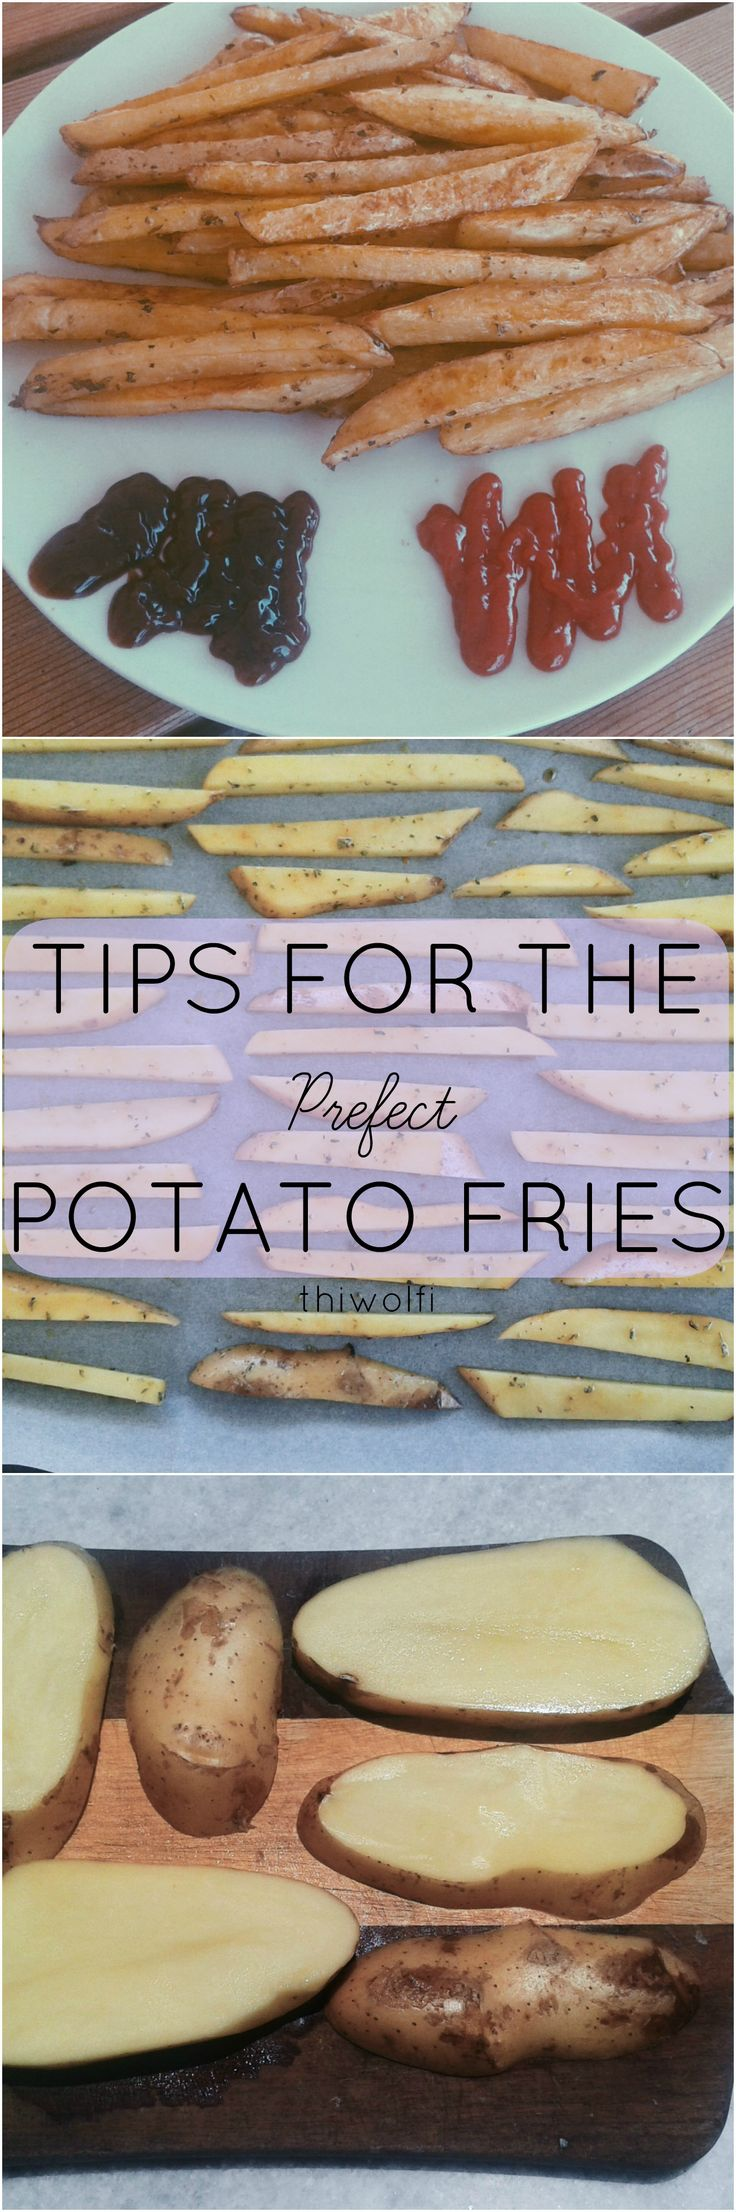 Tips For the Perfect Potato Fires!  All you need to know for making the most delicious oven baked potato fries!